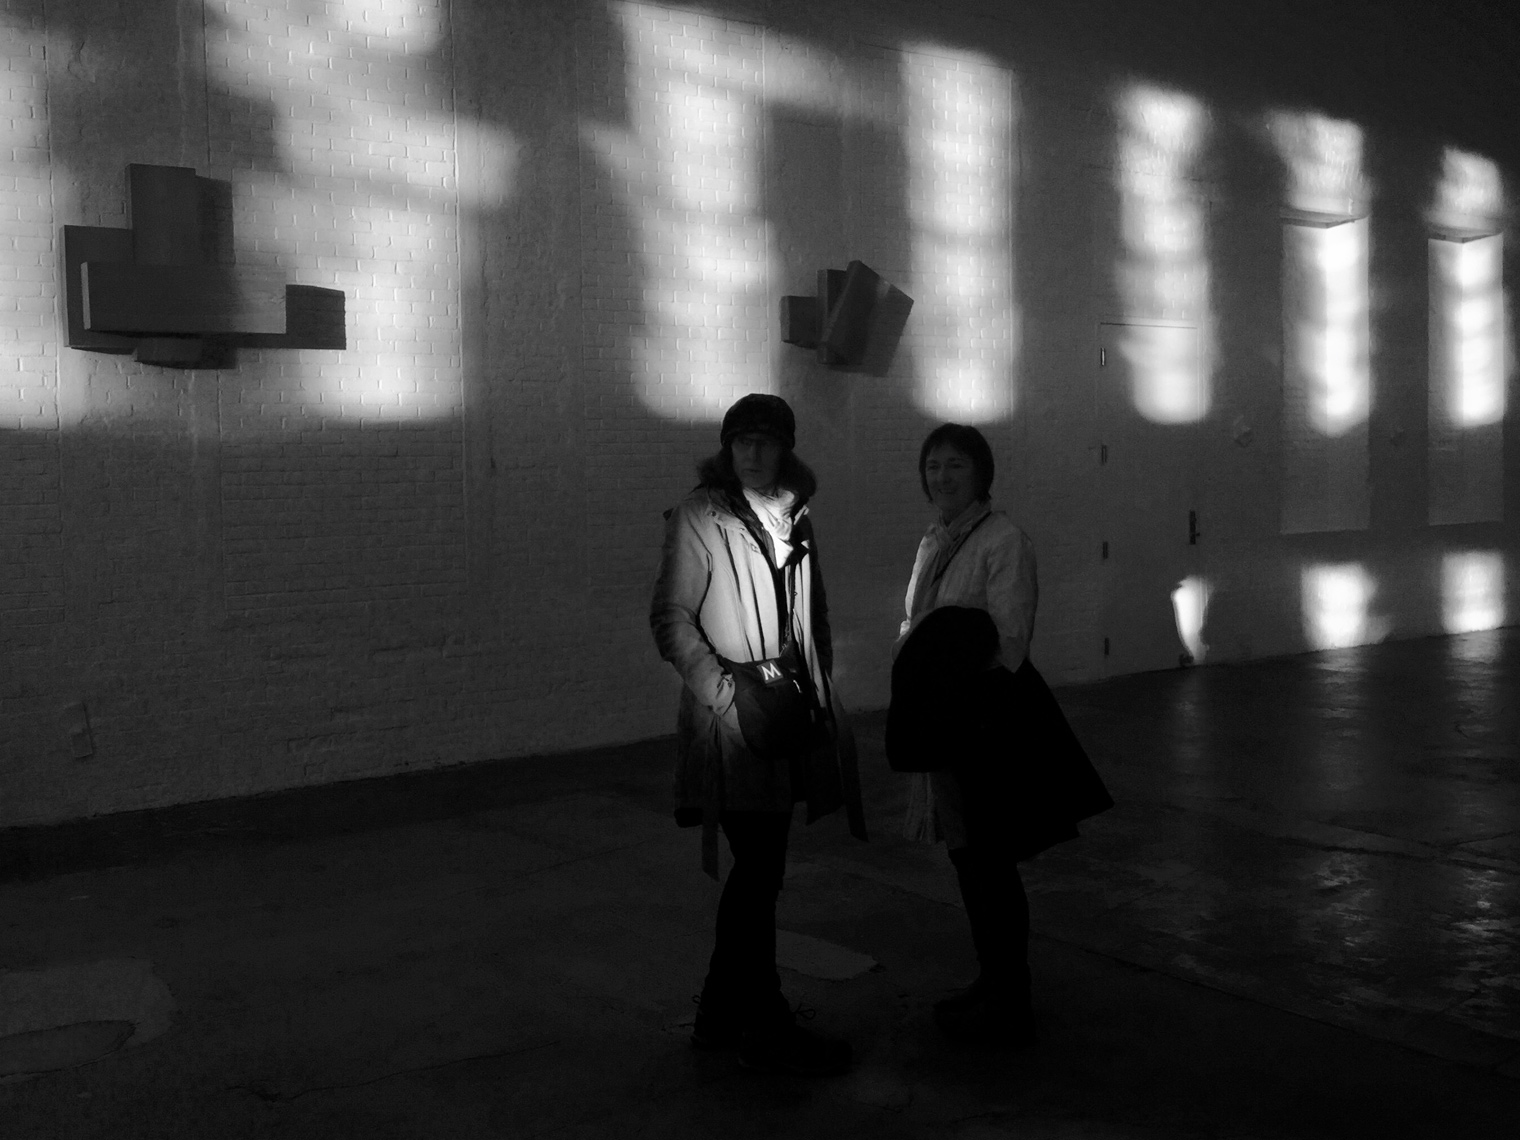 MassMoCa_Ladies_Shadows-webres